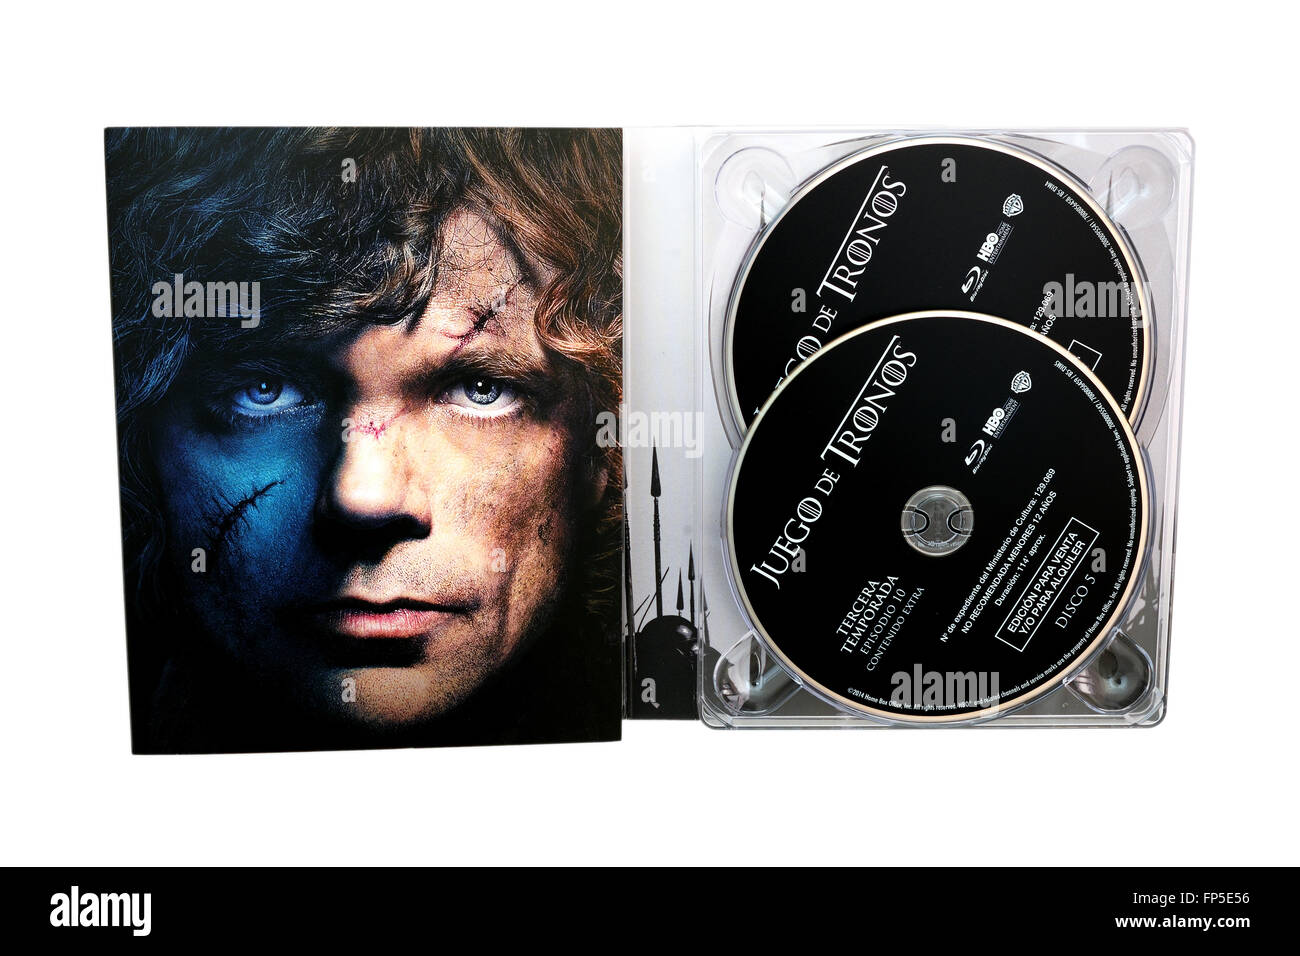 Game of Thrones, television series created for HBO, on Blu-Ray disc edition, with Tyrion Lannister. - Stock Image